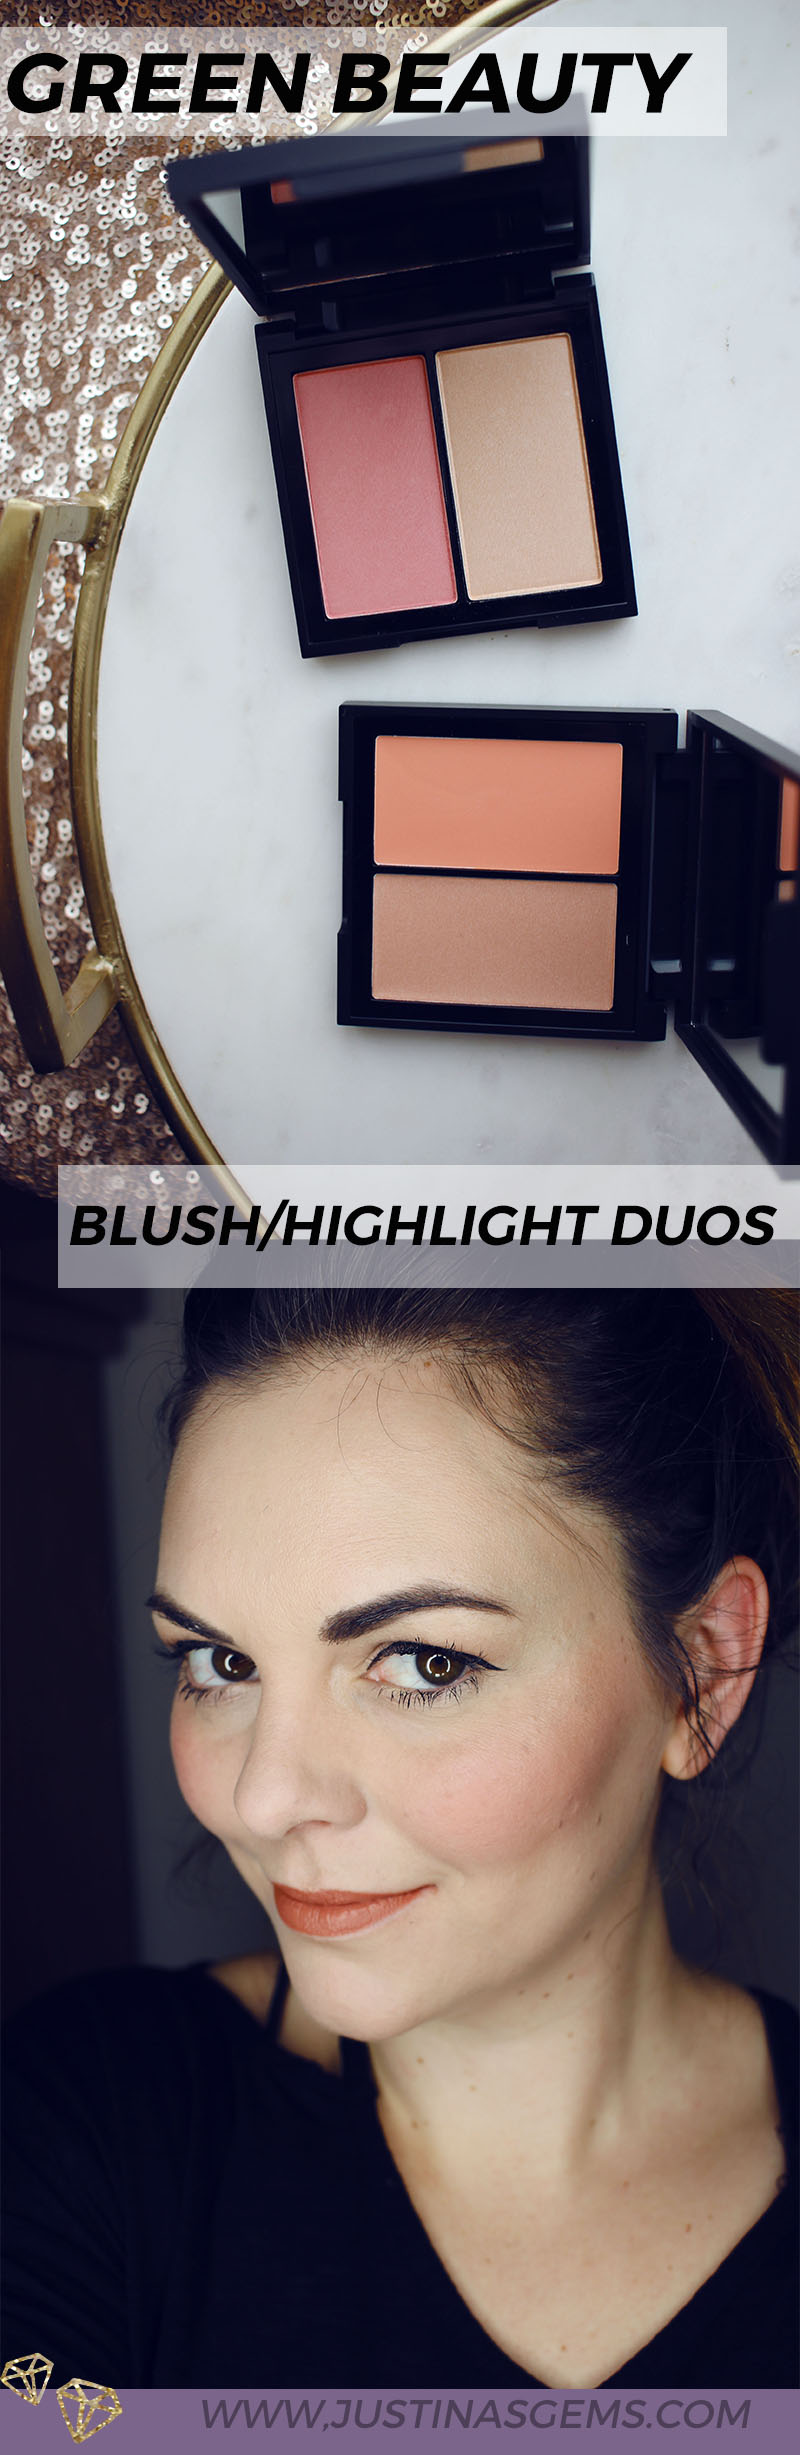 Green Beauty Blush/Highlight Duos: Some of the best and most pigmented, buttery blush/highlights out there!